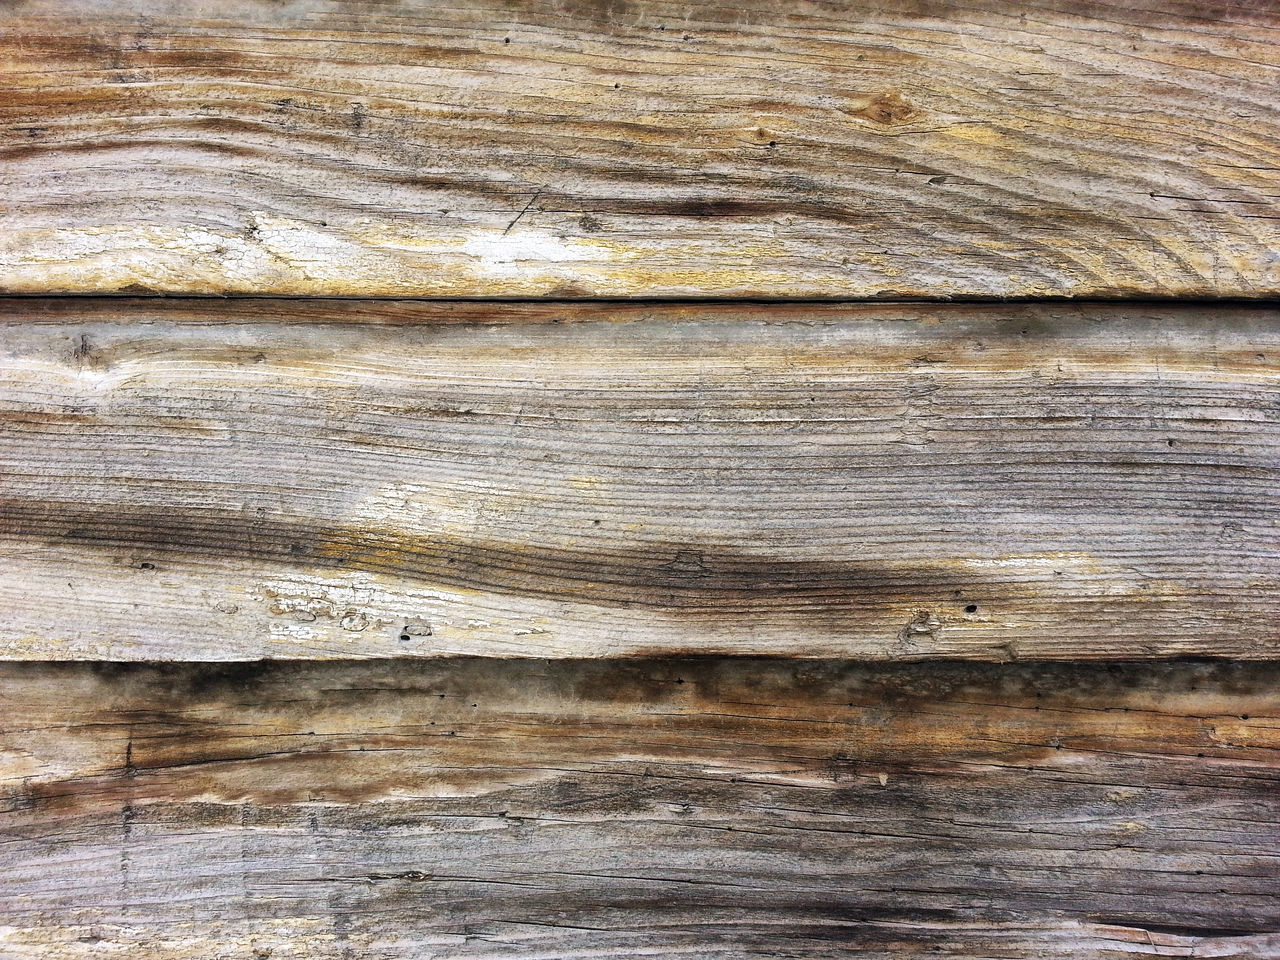 striped, backgrounds, textured, full frame, pattern, rough, no people, timber, nature, wood - material, close-up, hardwood, brown, wood grain, outdoors, day